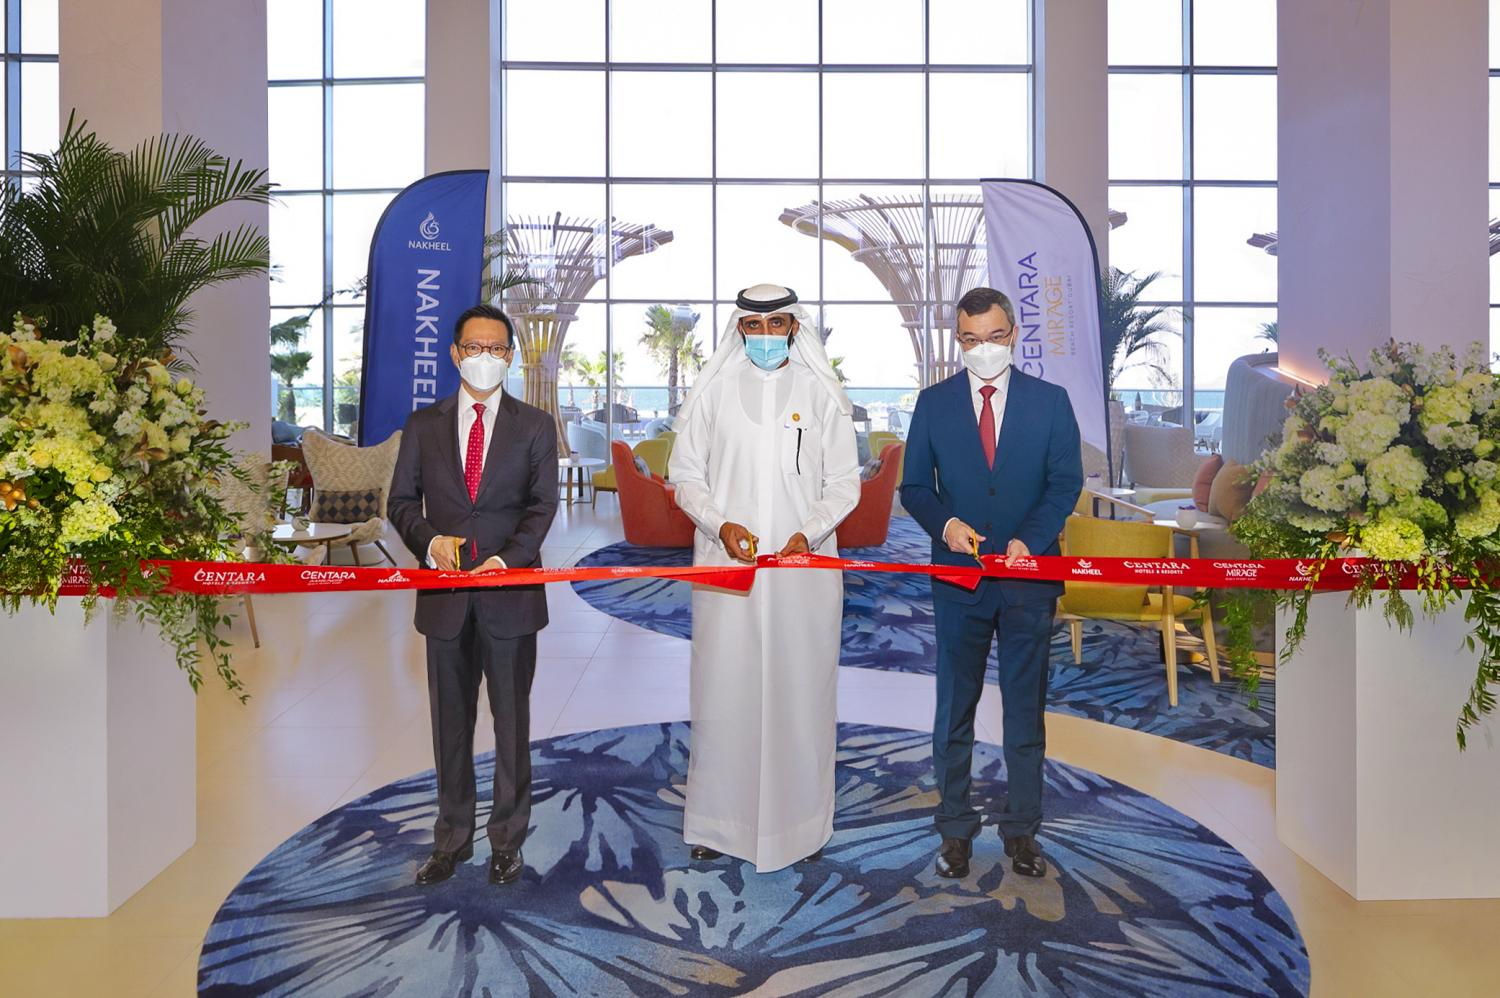 Centara formally launches first hotel property in UAE